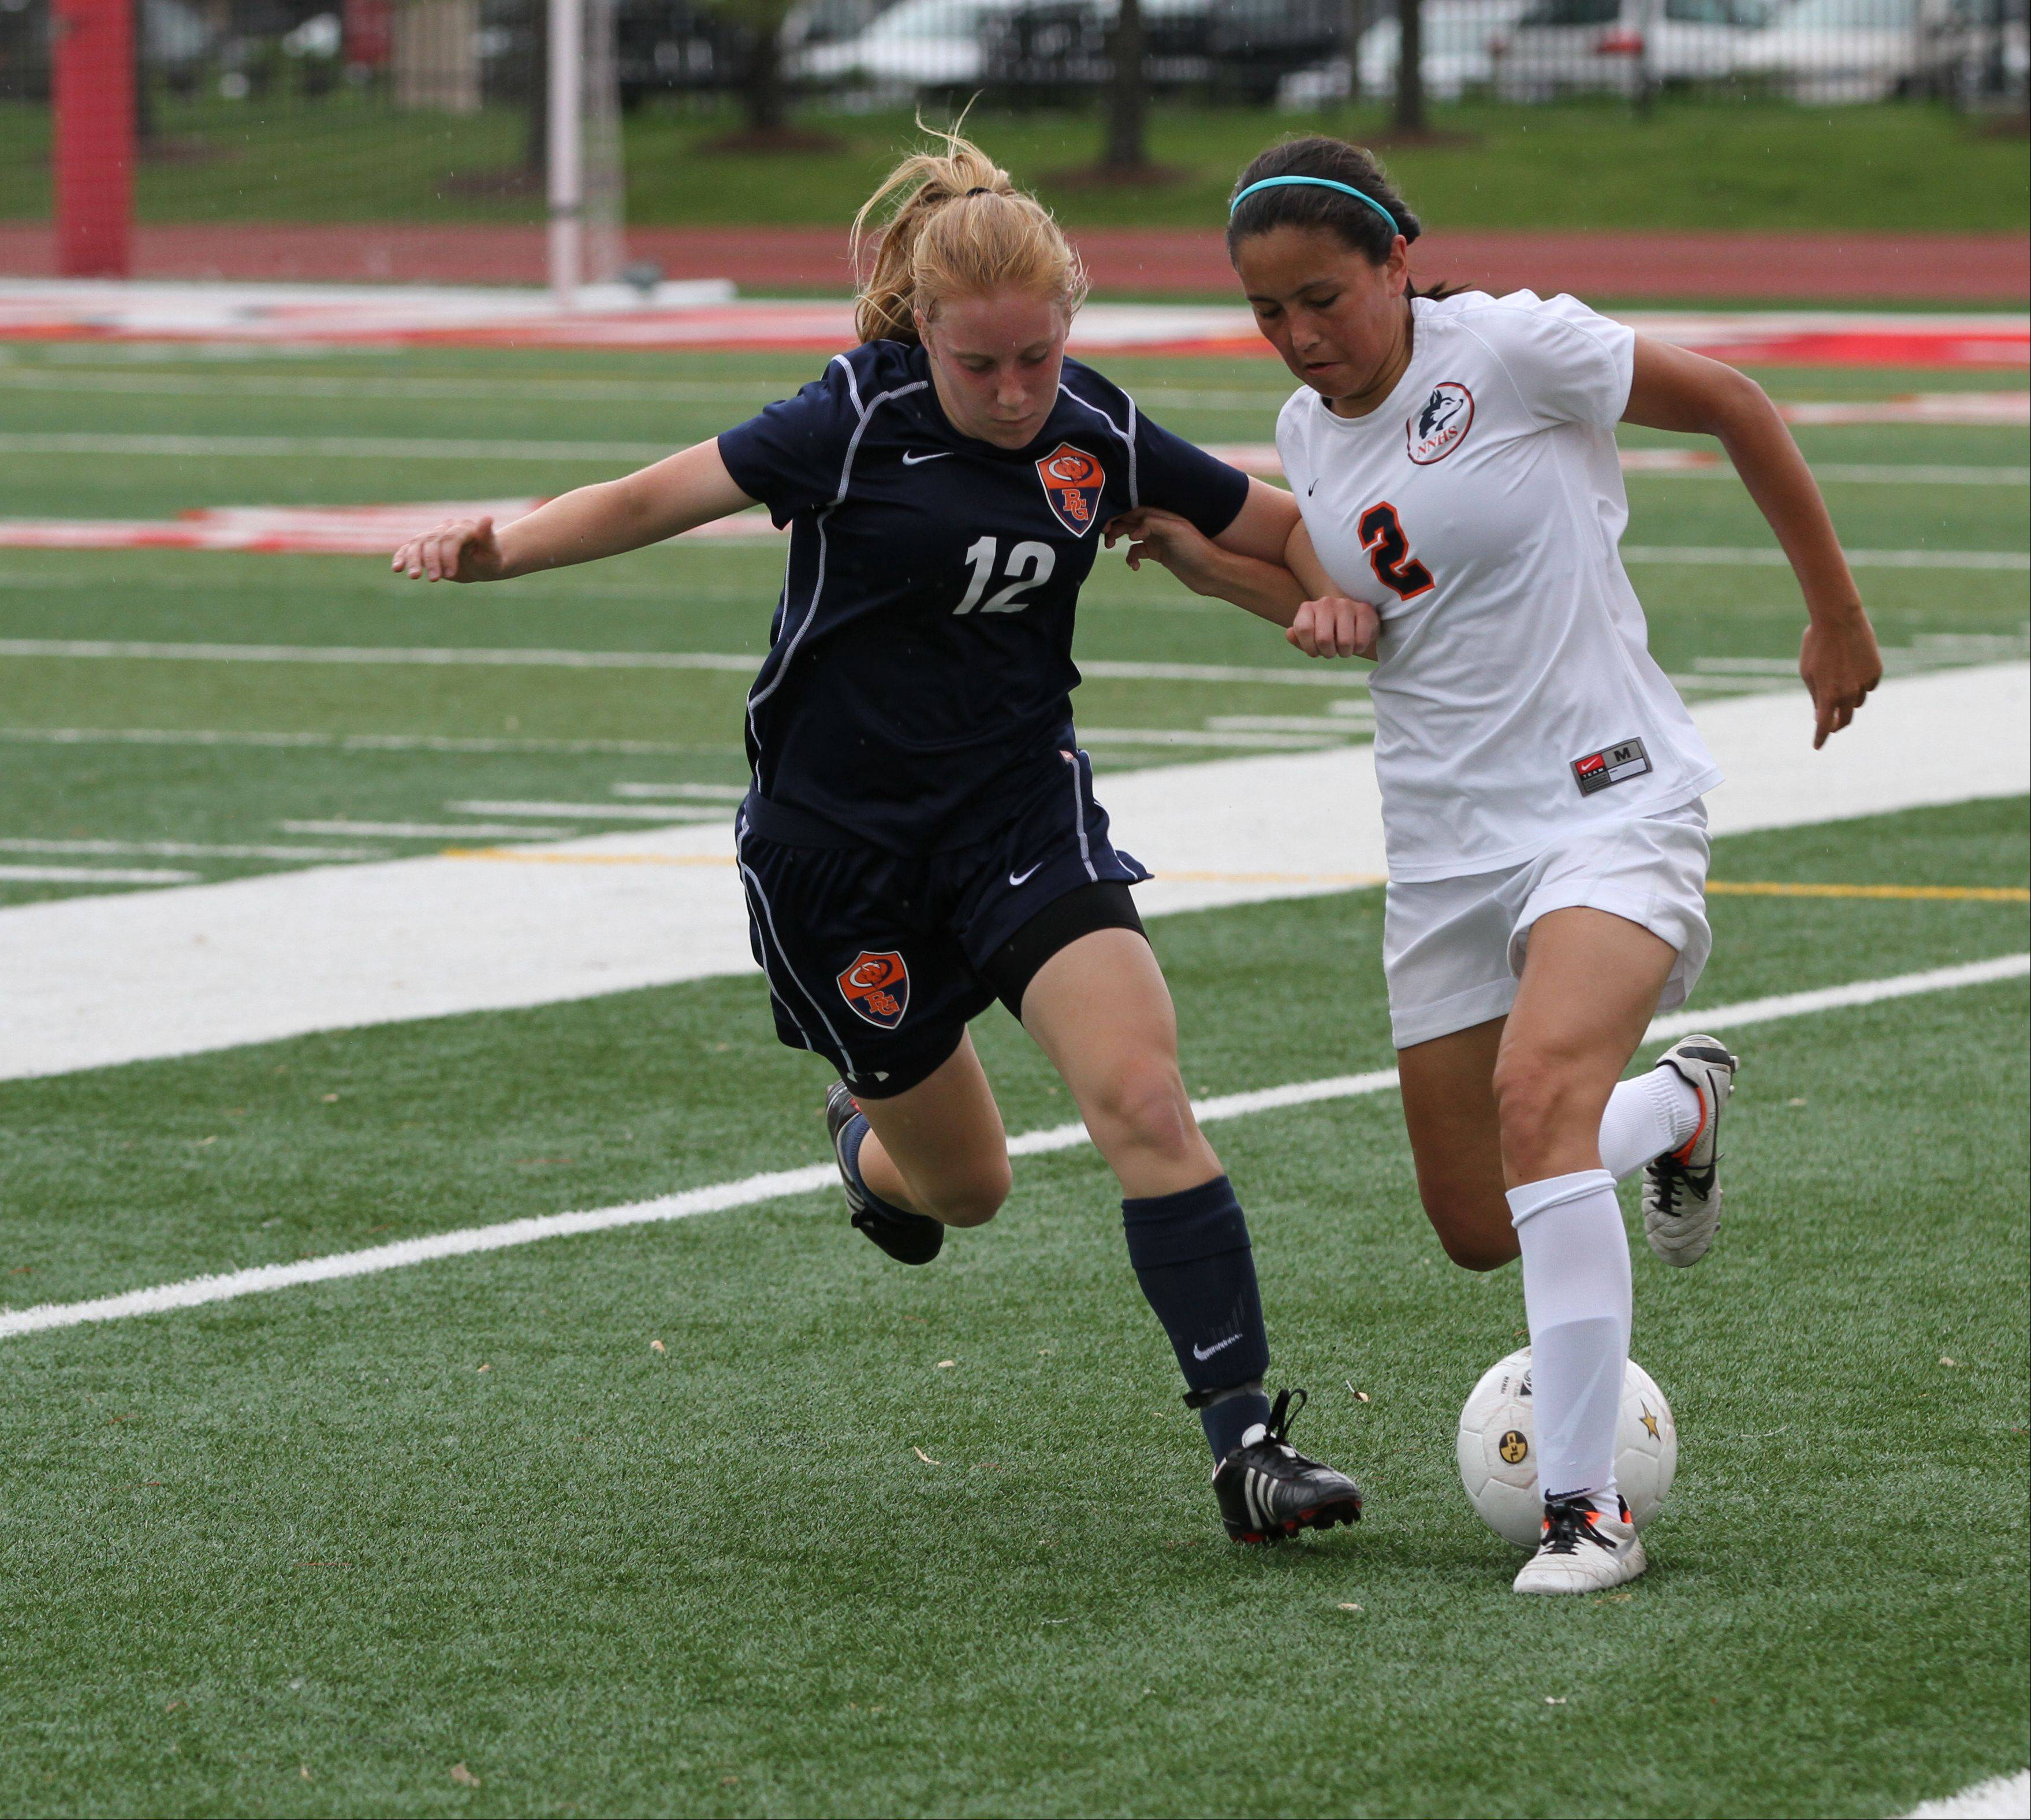 Buffalo Grove High School midfield Colleen Zickert (left) battles for the ball against Naperville North High School midfield Meghan Lee at the girl soccer state semi-final game on Friday, May 31, 2013 at North Central College in Naperville, Ill.